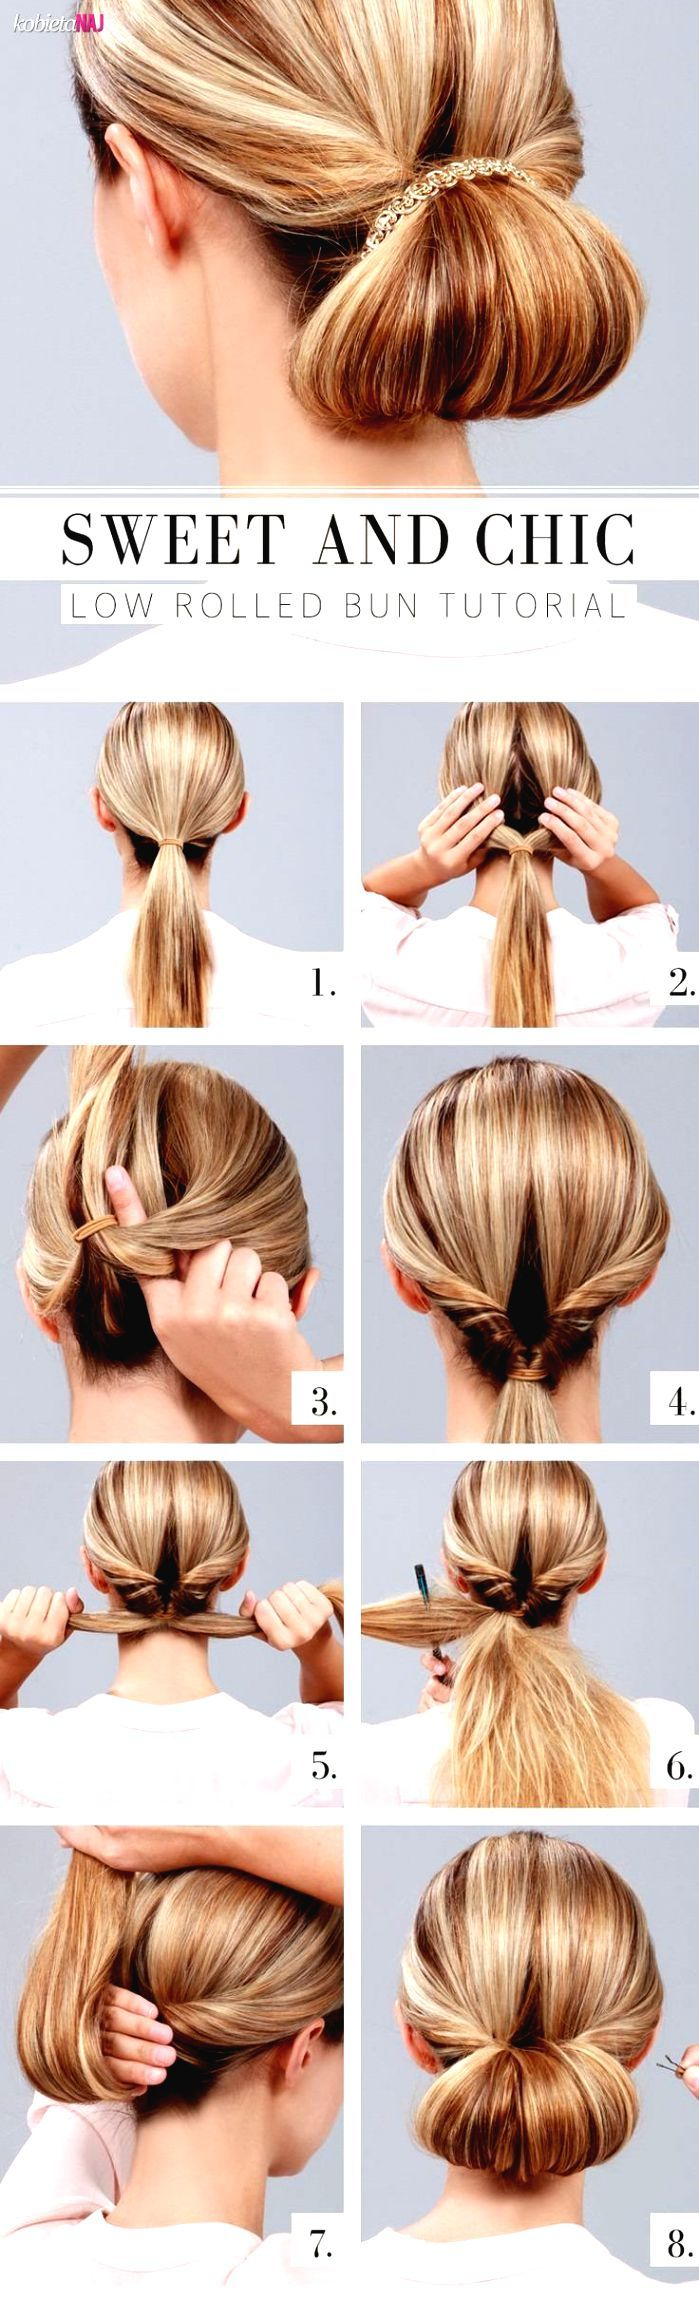 Top superfast hairstyles to do in your car hairstyle